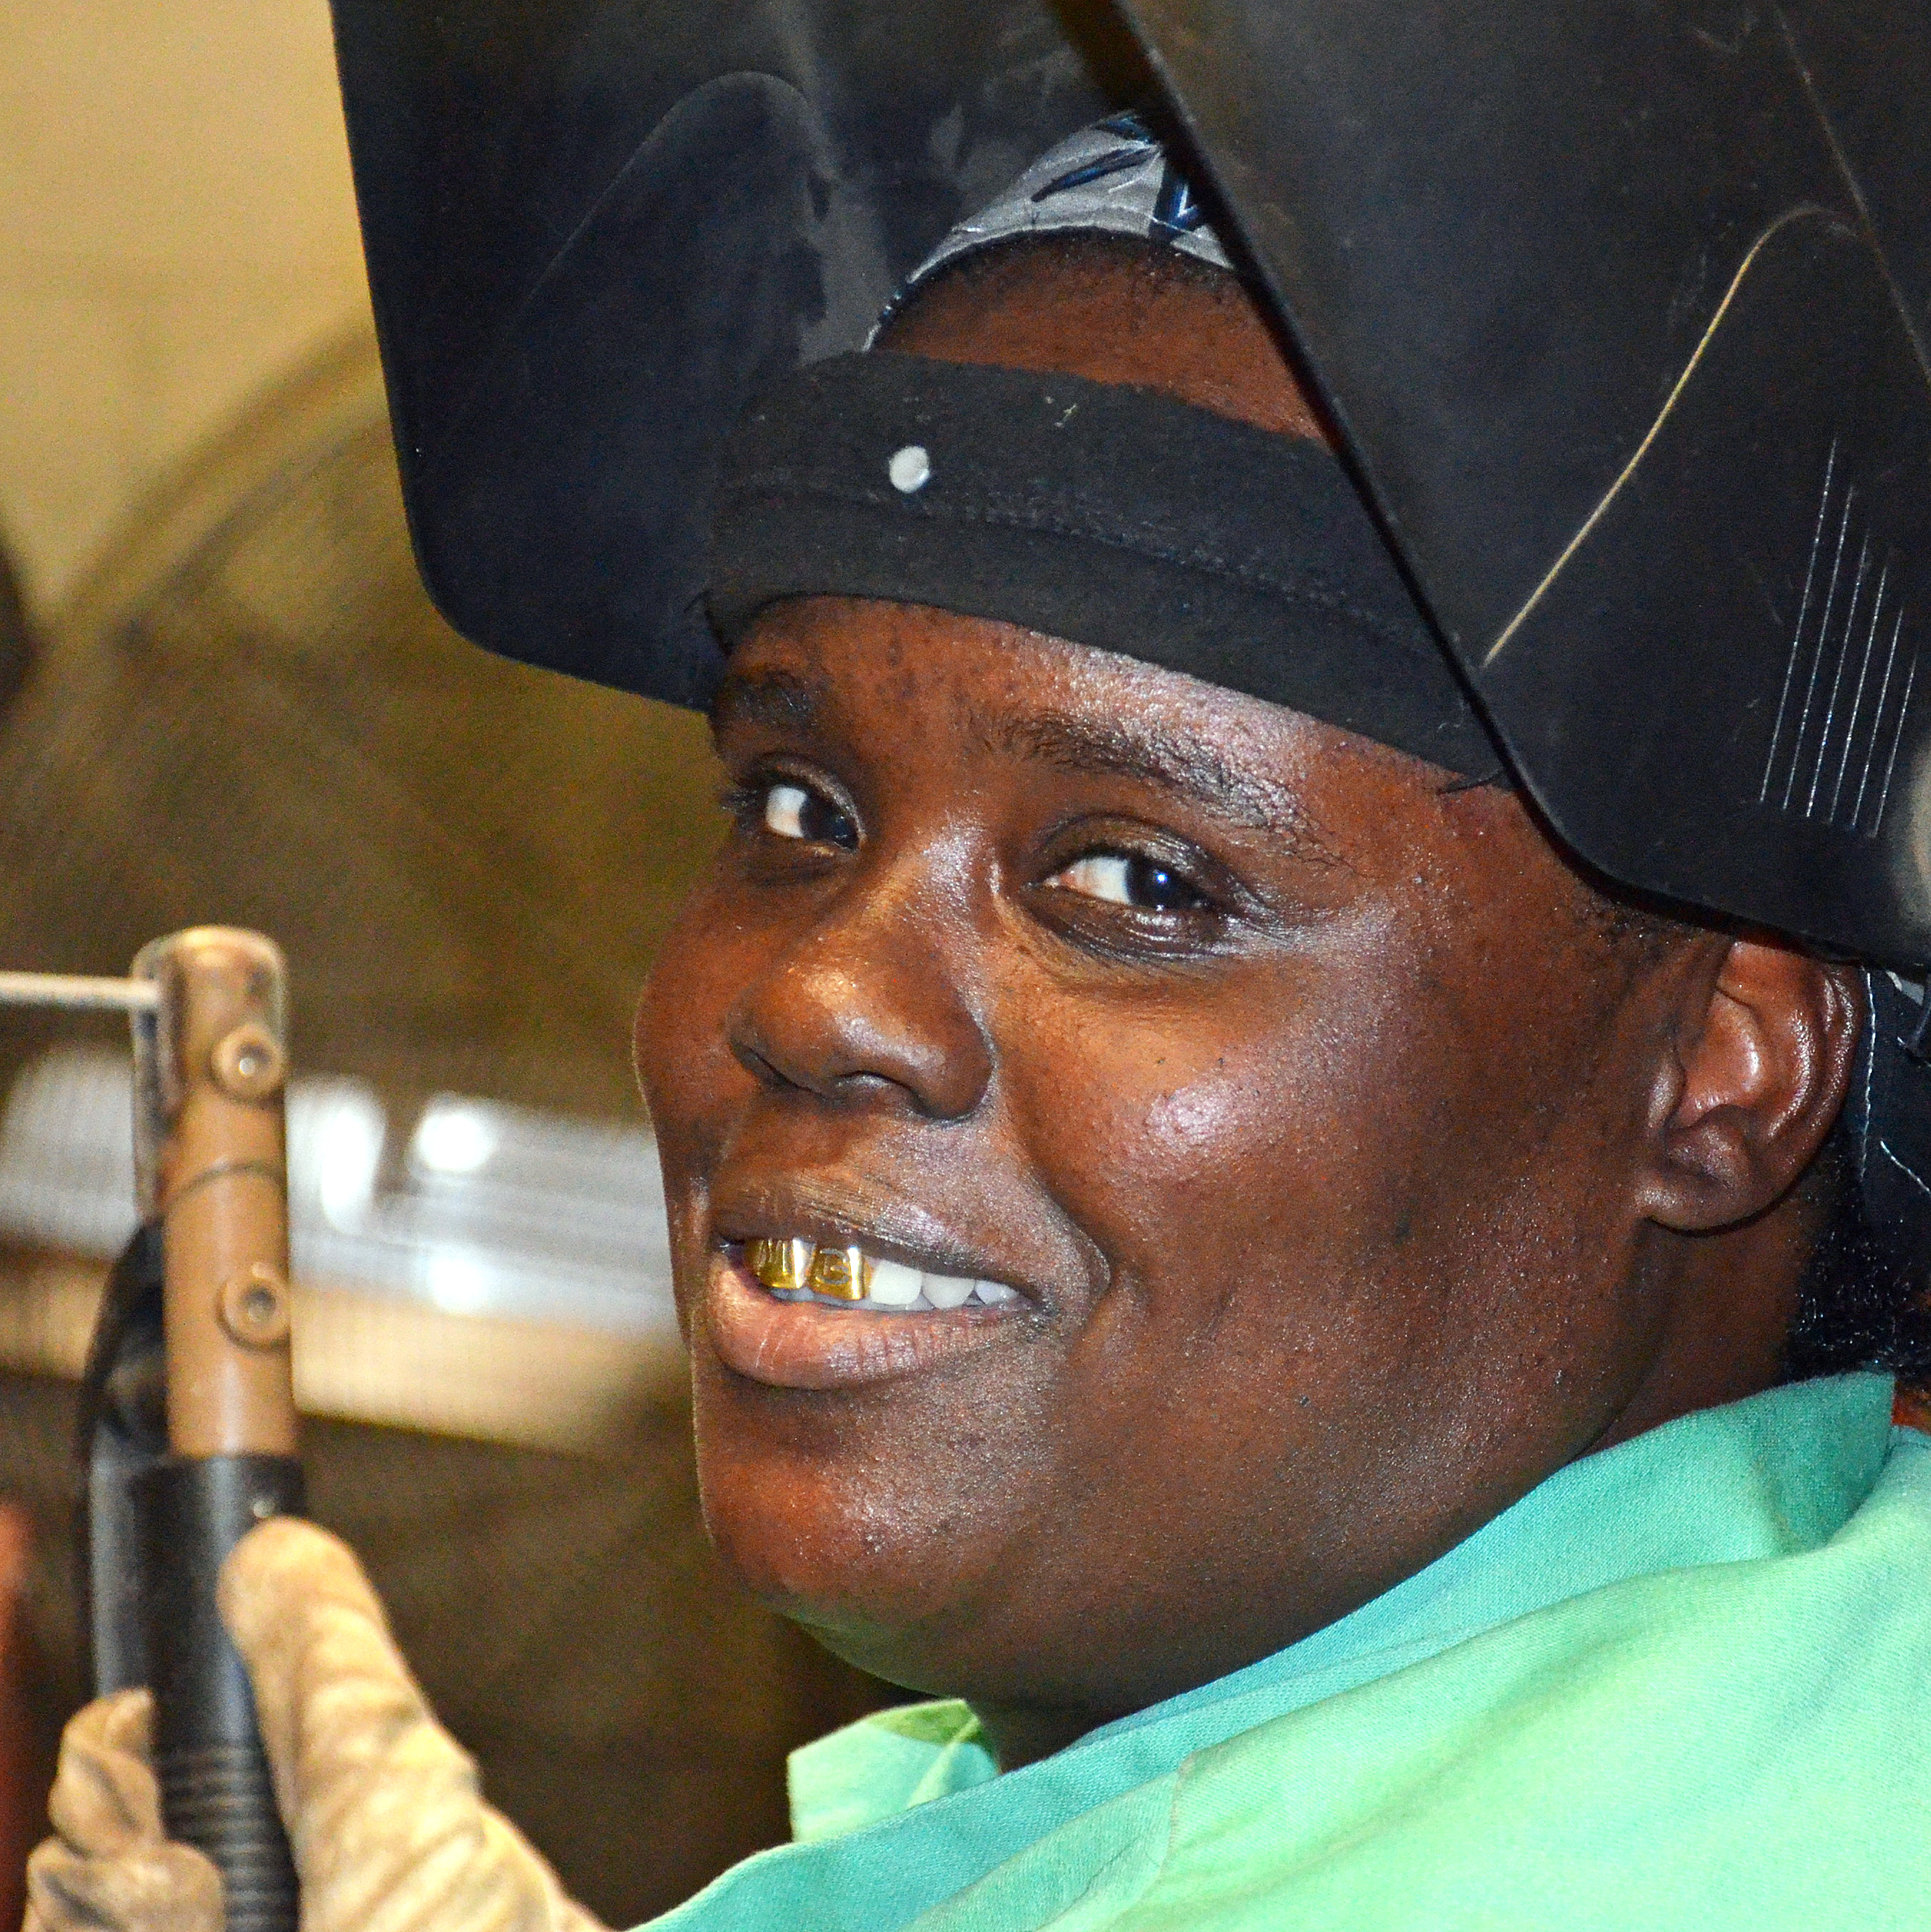 Students build dreams through welding class